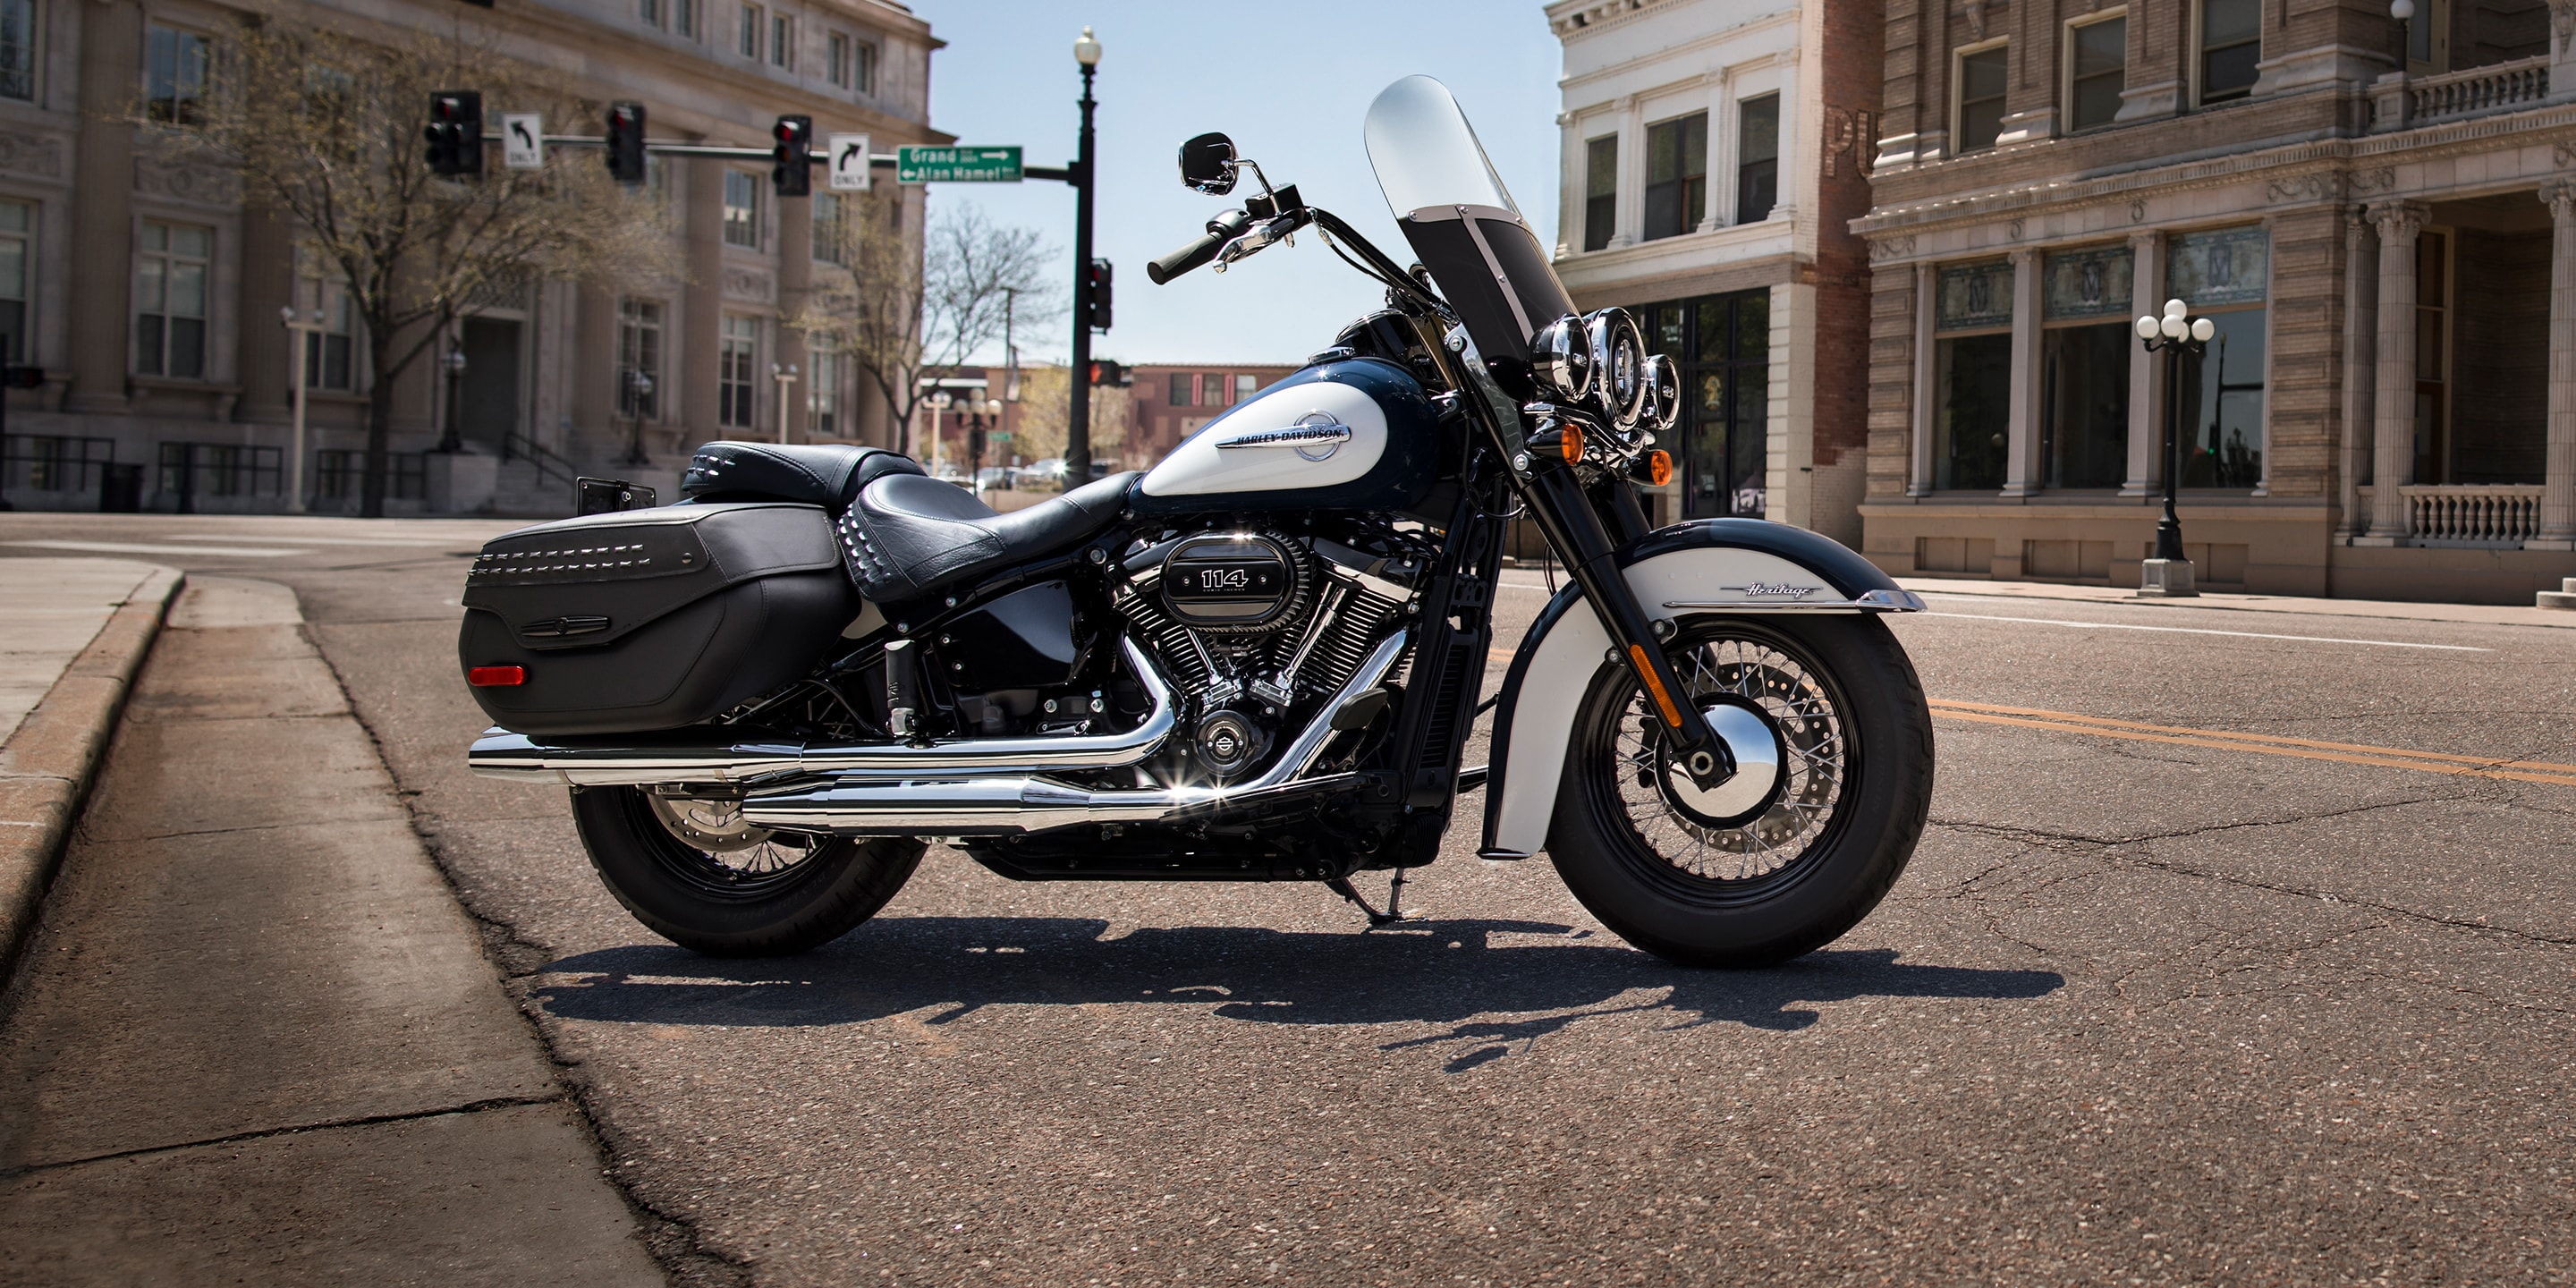 2019 Harley Davidson Heritage Classic: Pictures Specs and